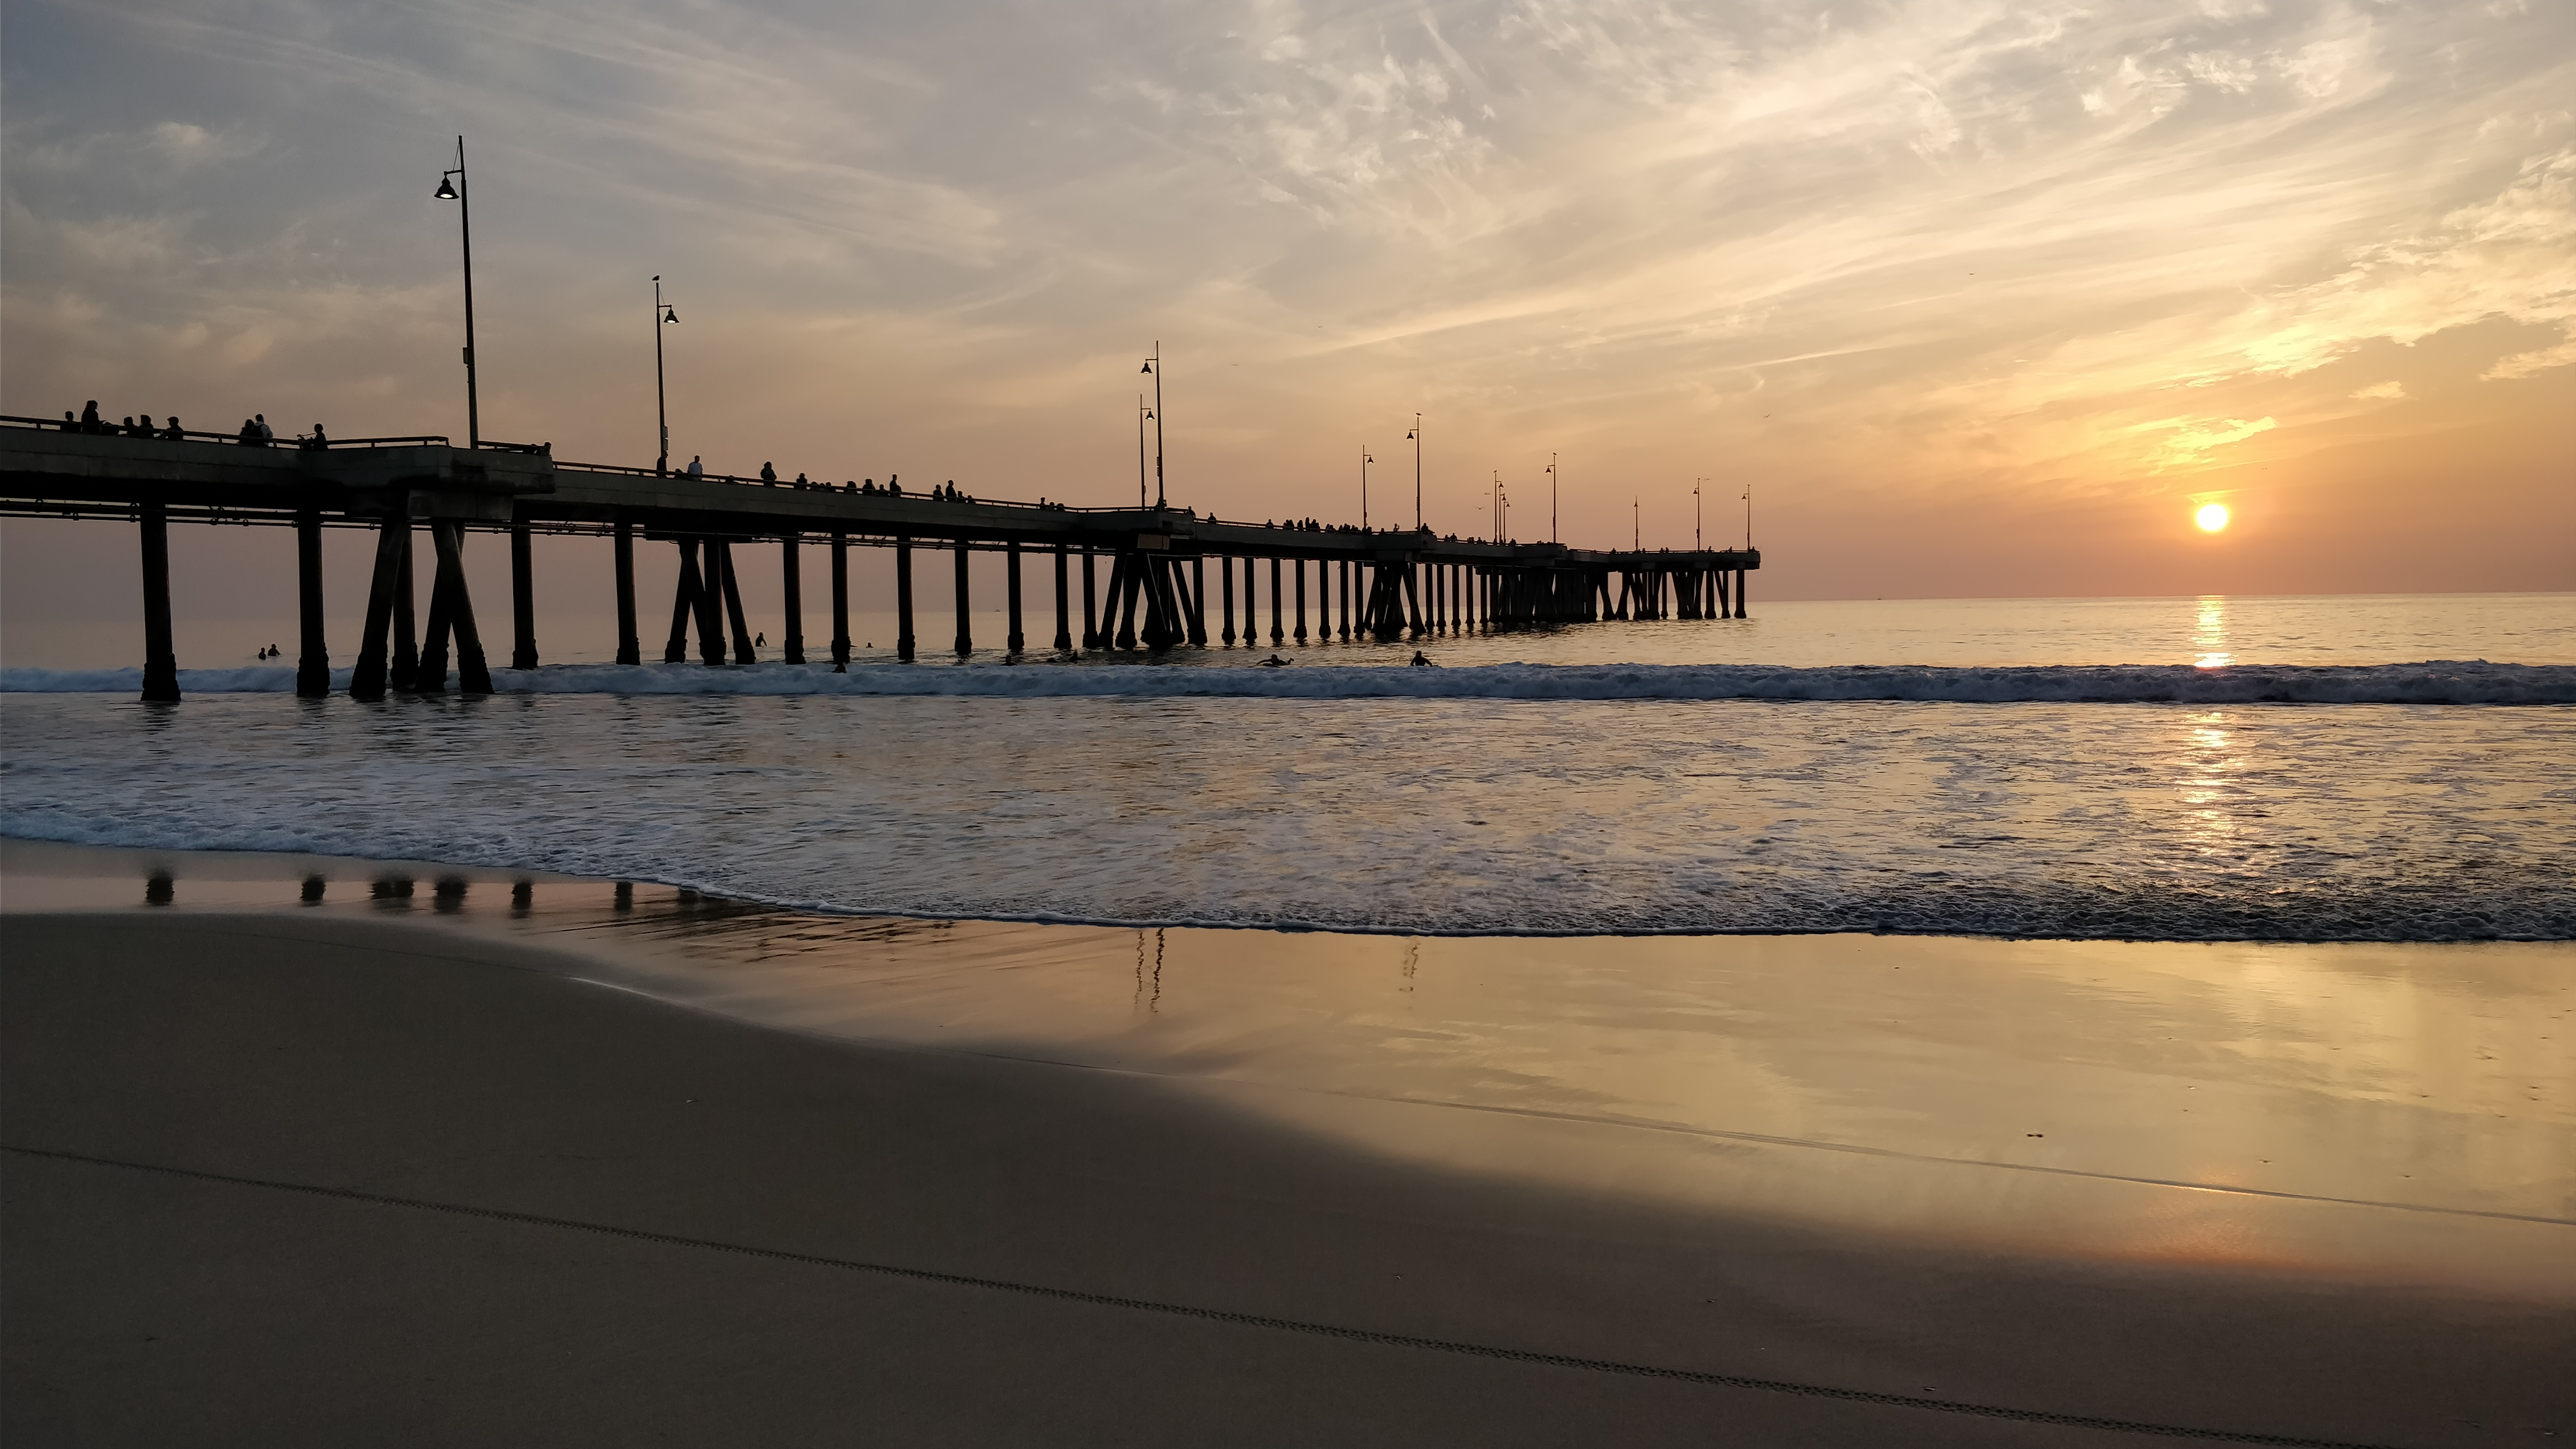 The Venice Pier at sunset